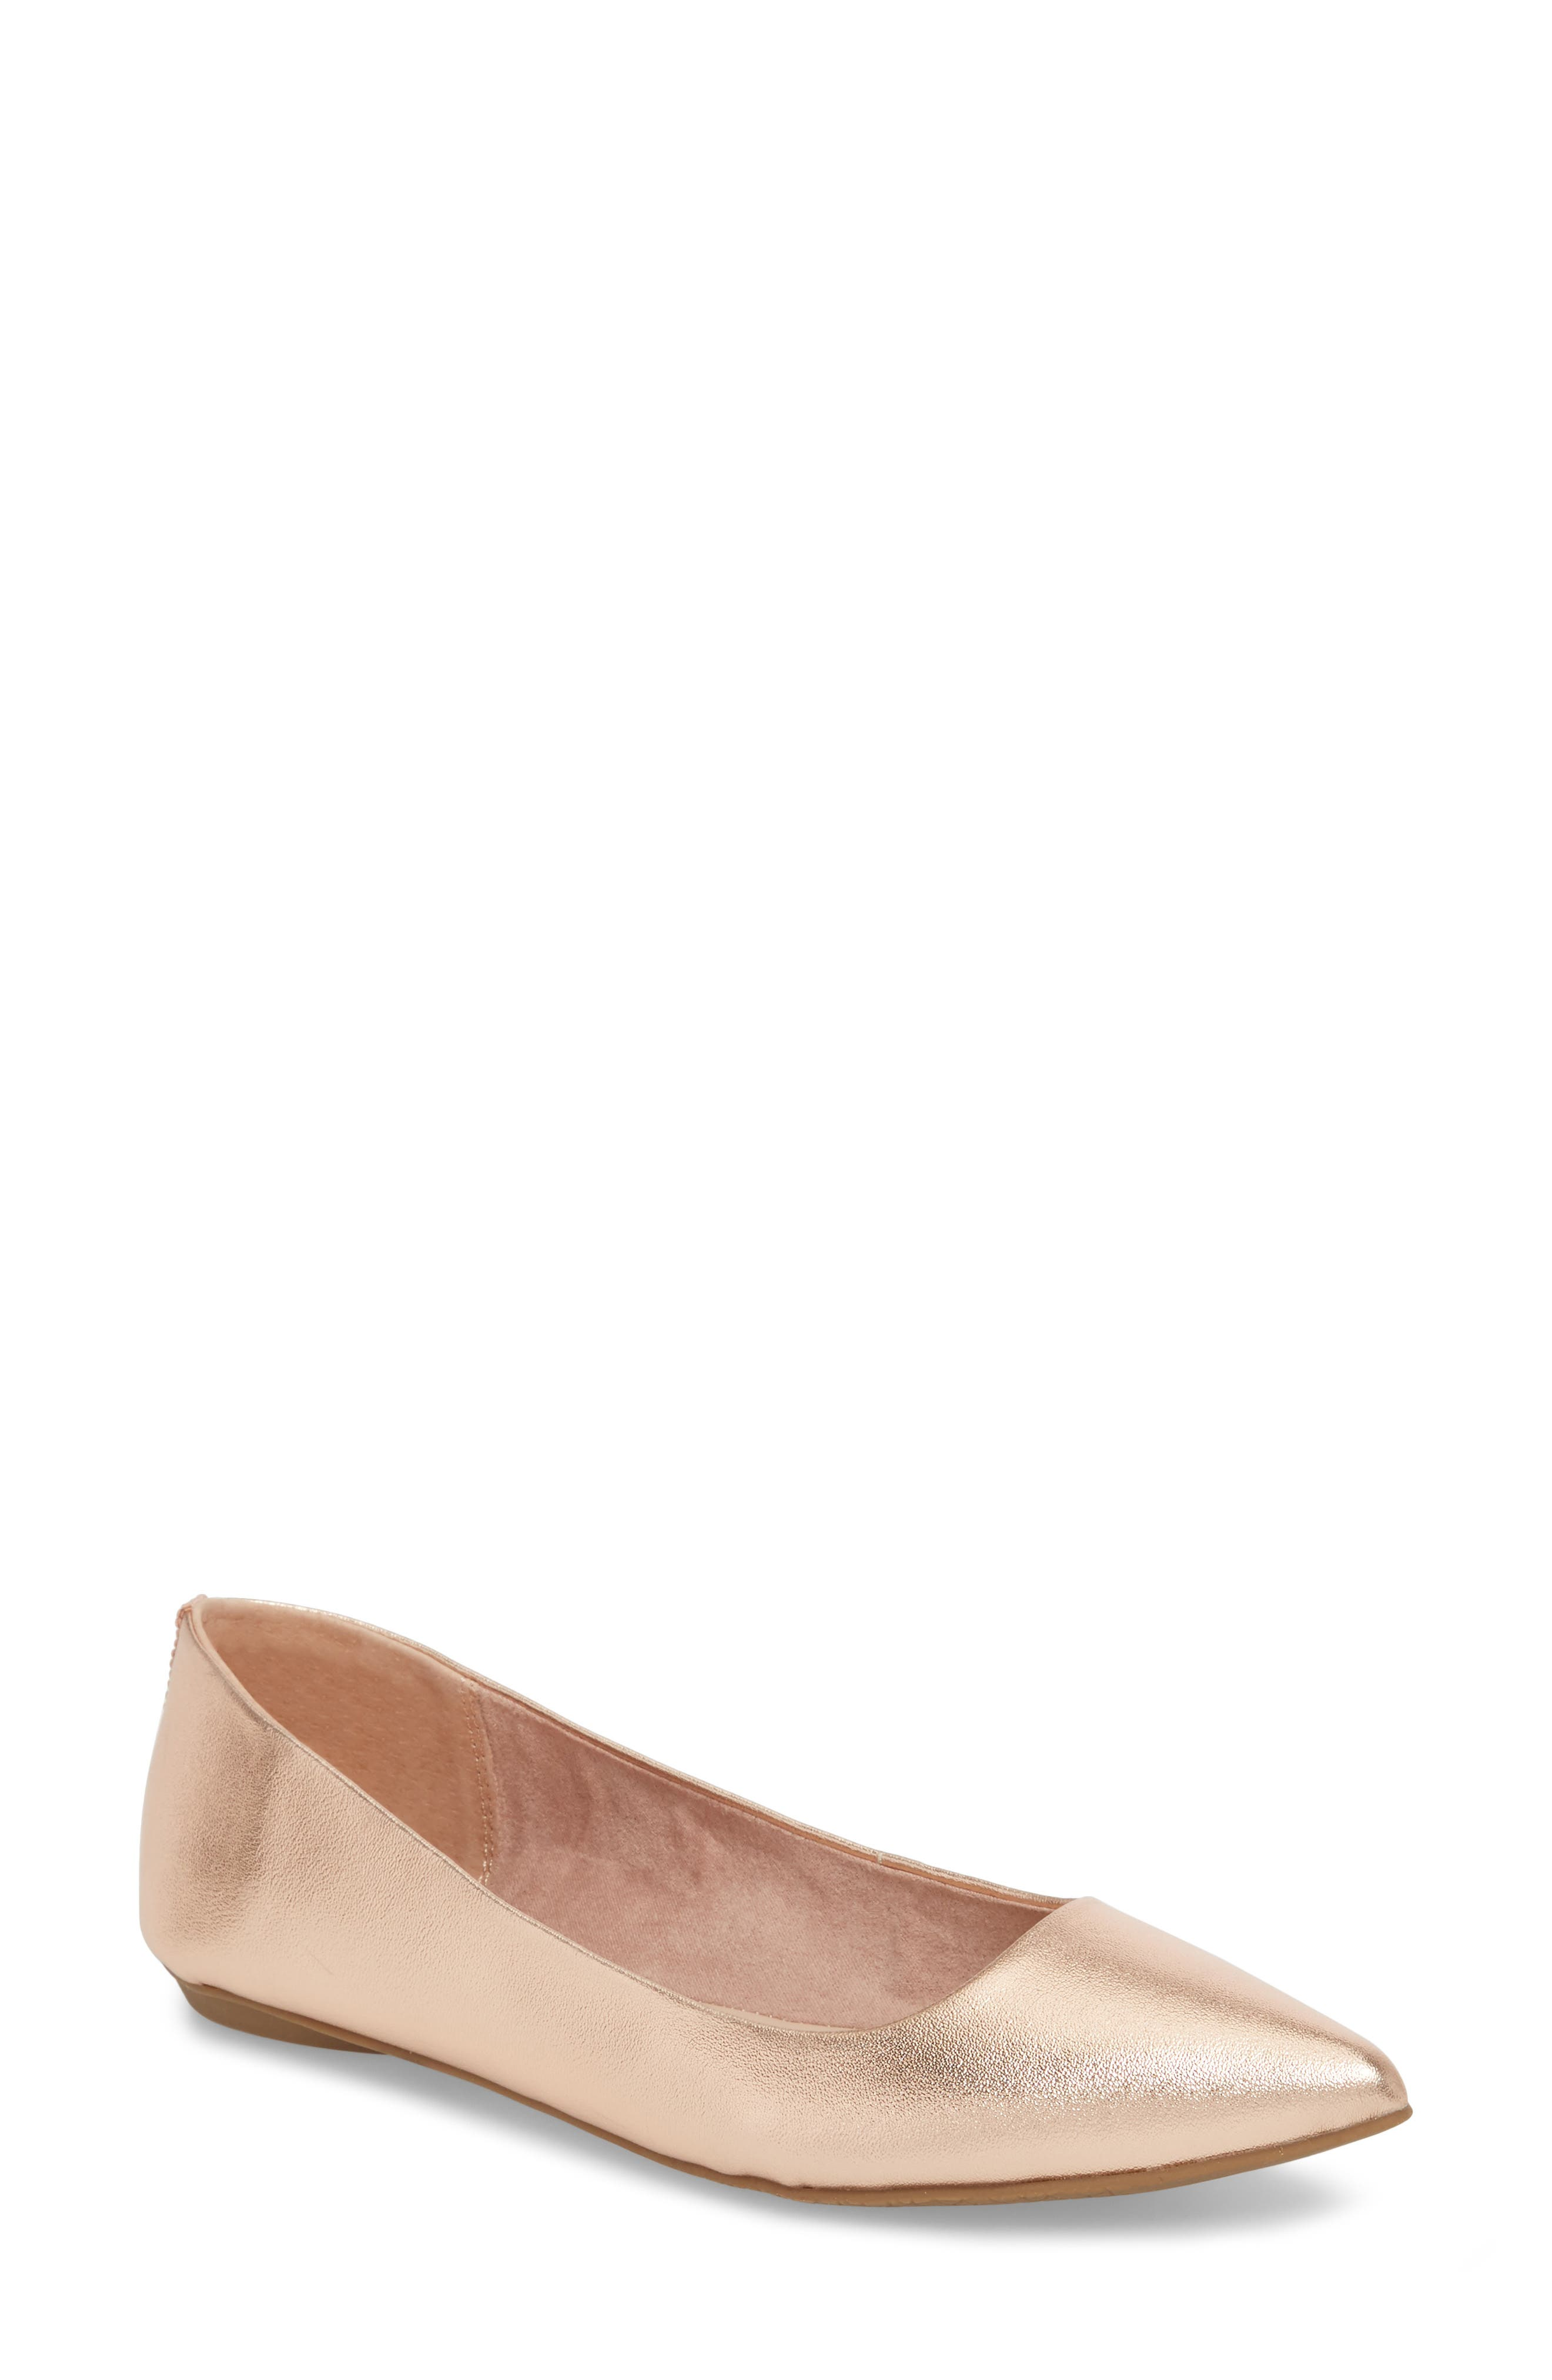 Sasha Flat,                             Main thumbnail 1, color,                             Rose Gold Faux Leather